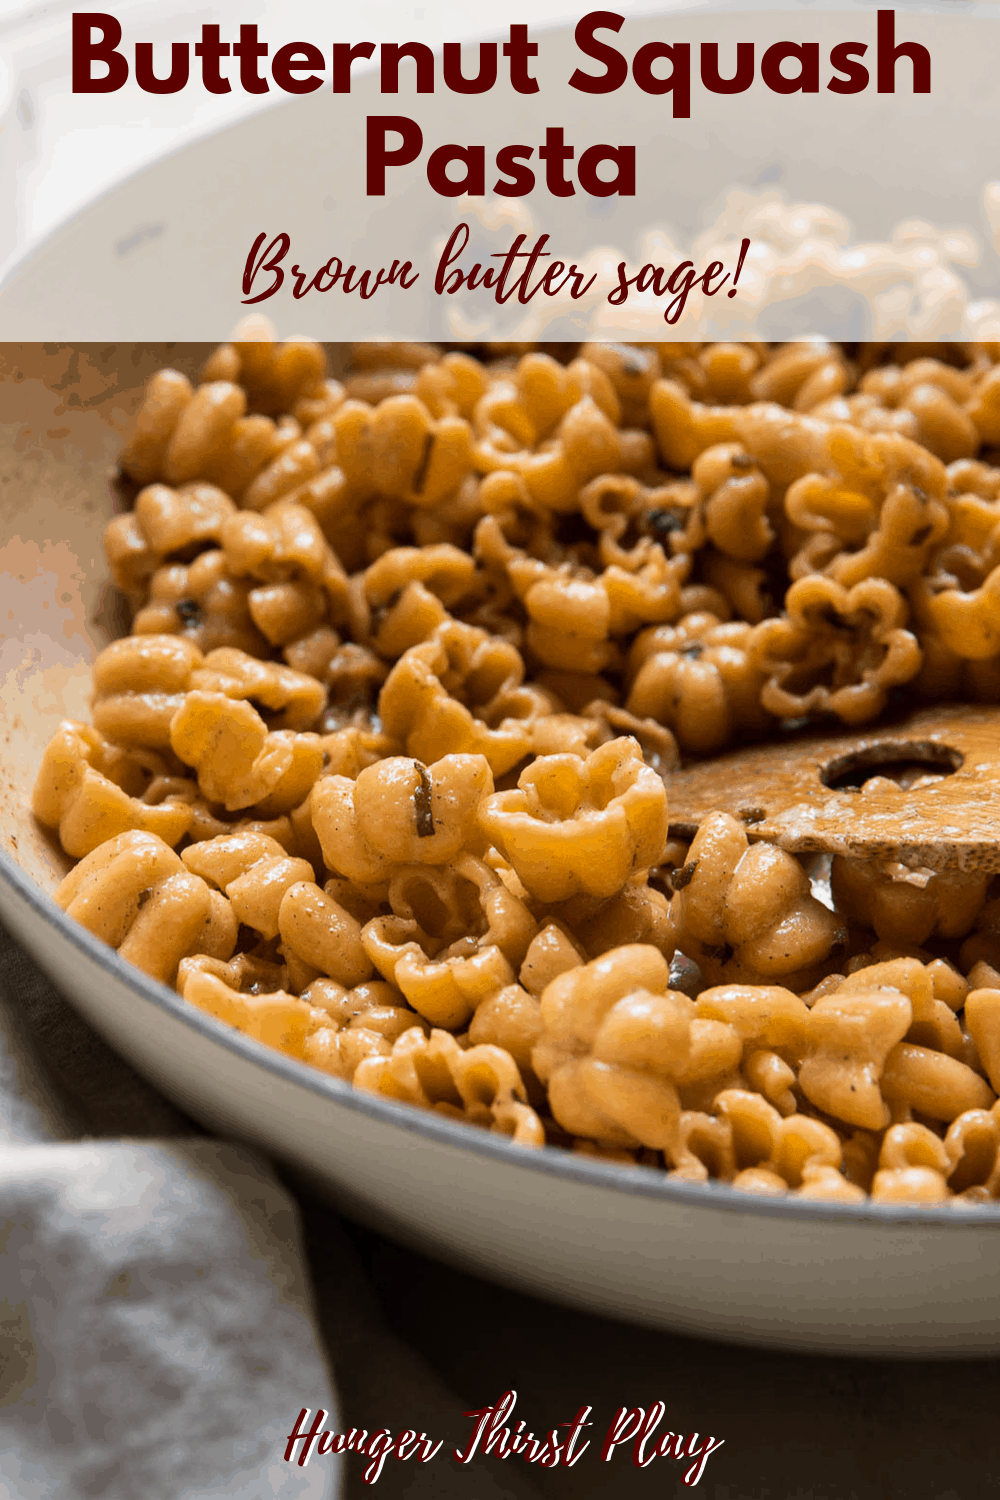 Butternut Squash Pasta With Brown Butter Sage Recipe Butternut Squash Pasta Squash Pasta Sage Recipes